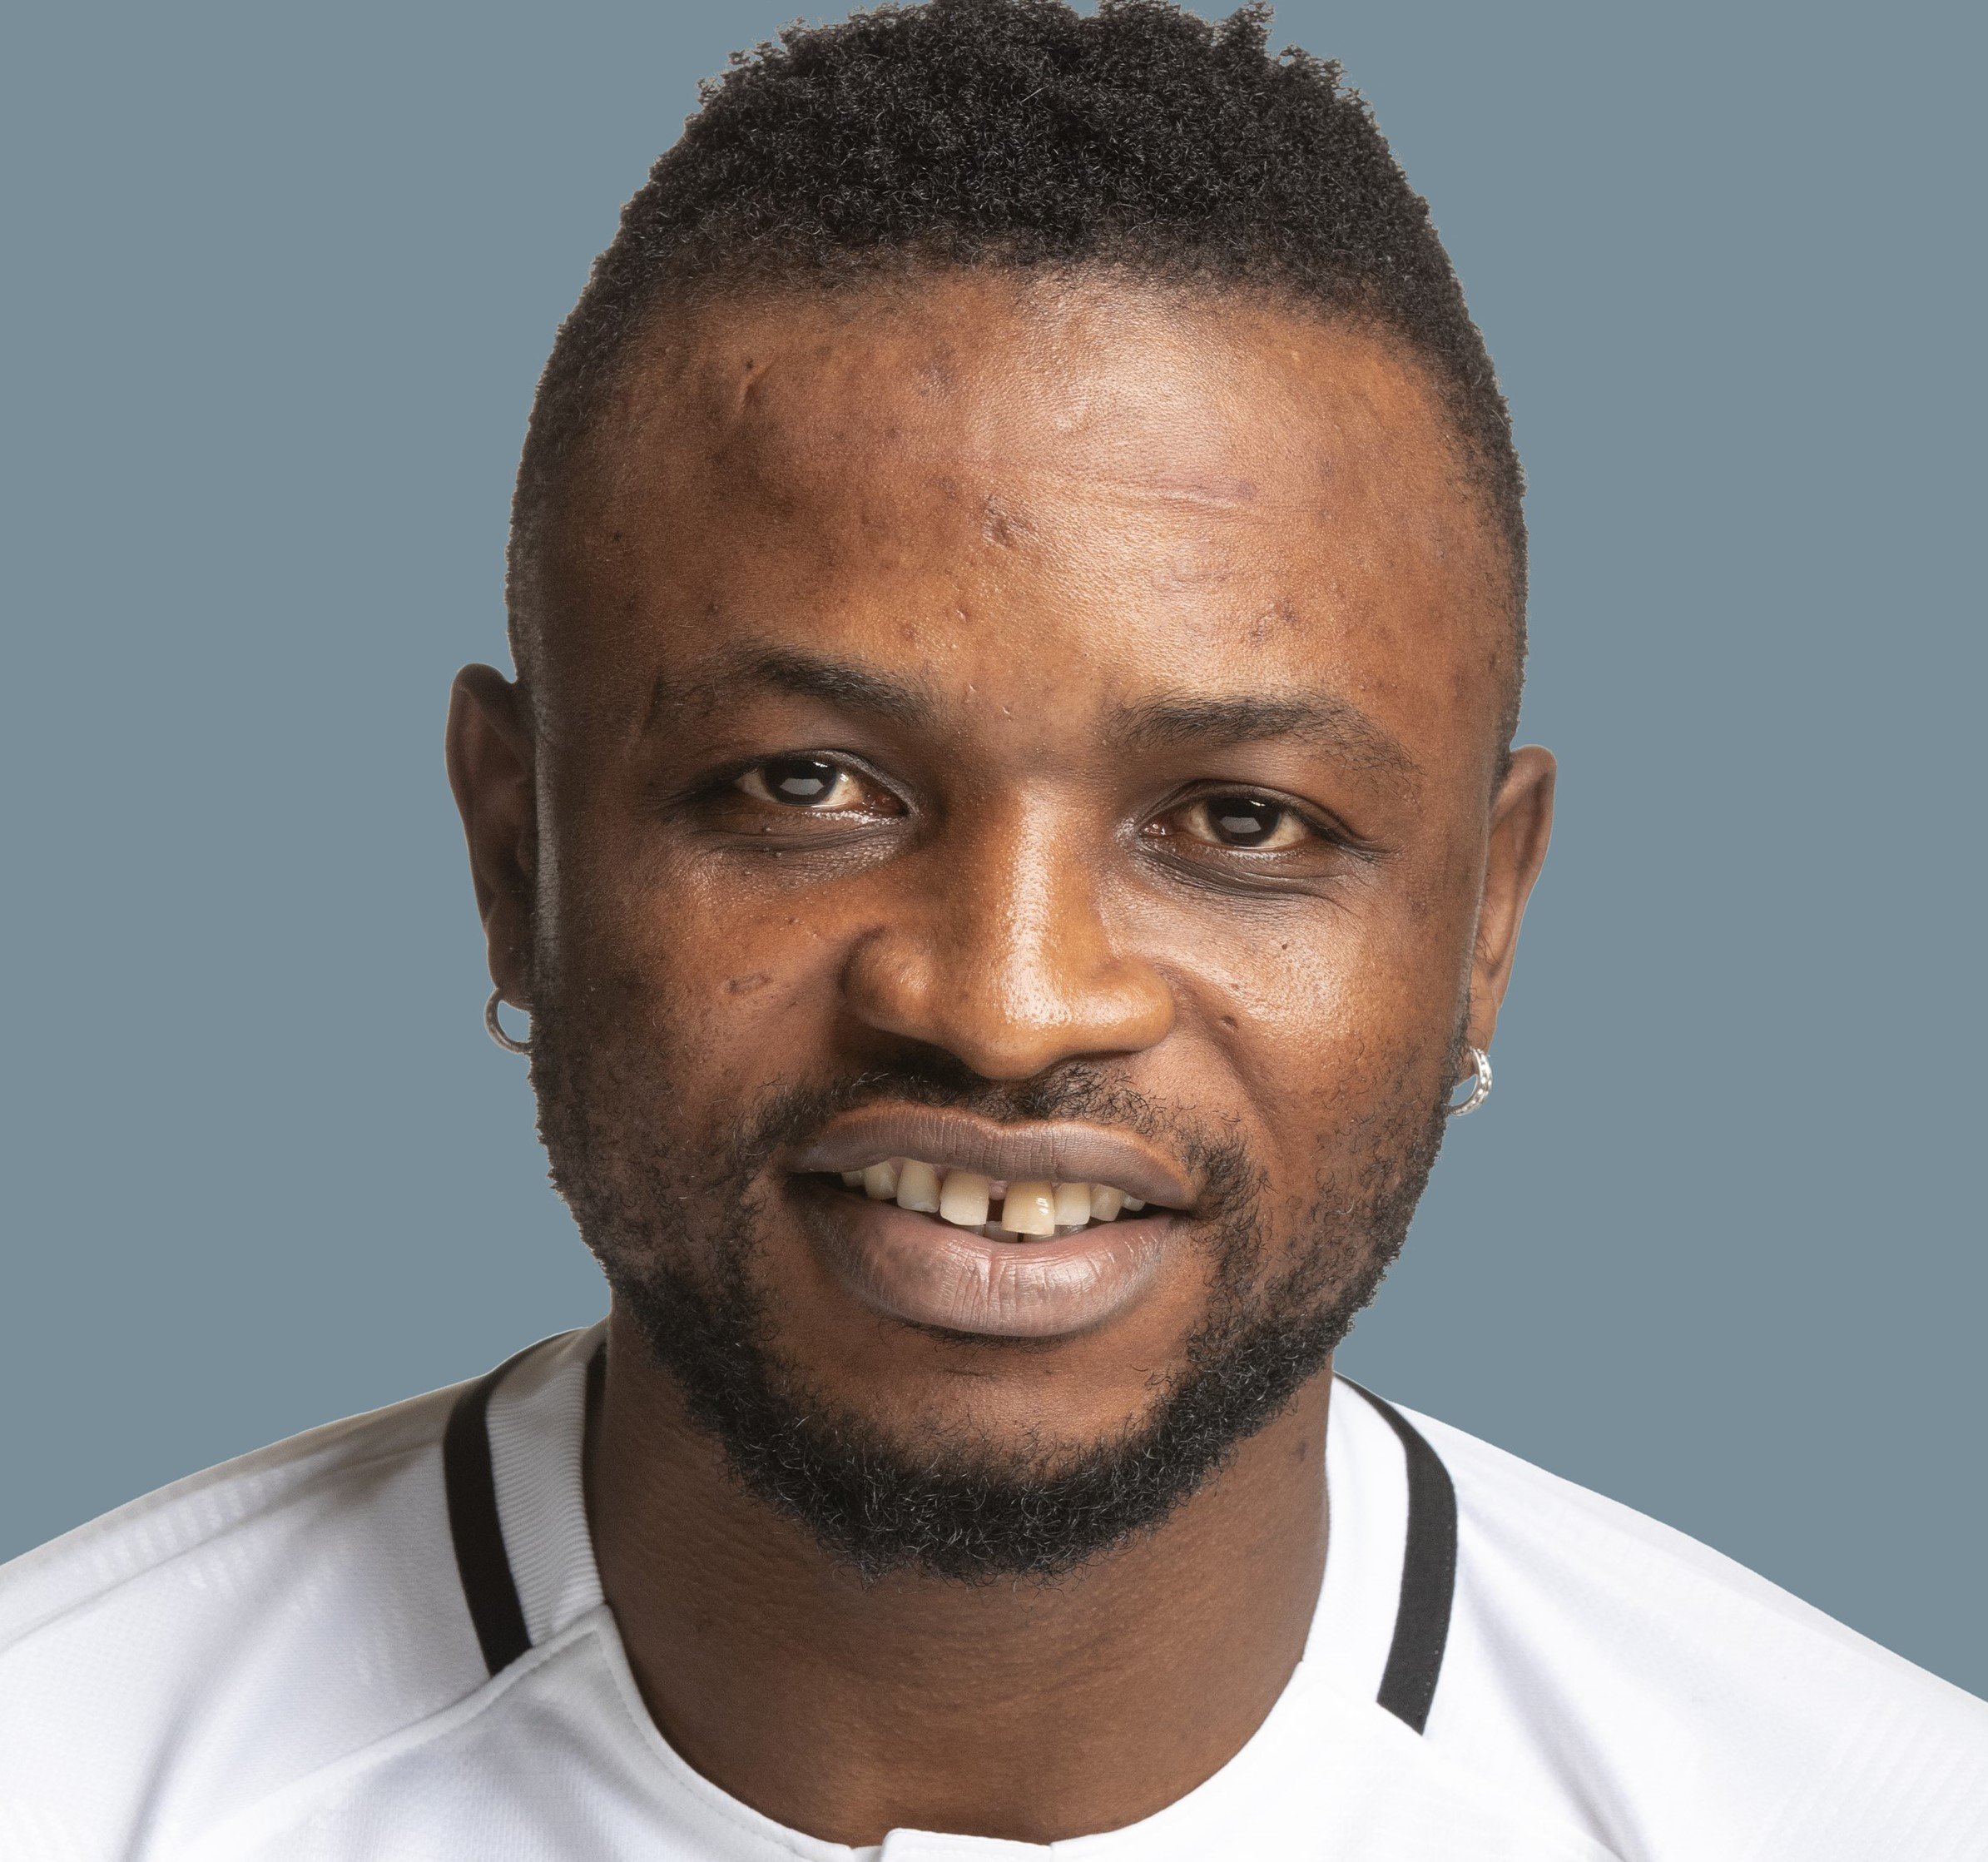 """""""IT WAS A DREAM COME TRUE TO PLAY FOR AND CAPTAIN MY COUNTRY. I AM JUST TRYING TO DO MY BEST"""" - Umaru Bangura (Sierra Leone Footballer)"""